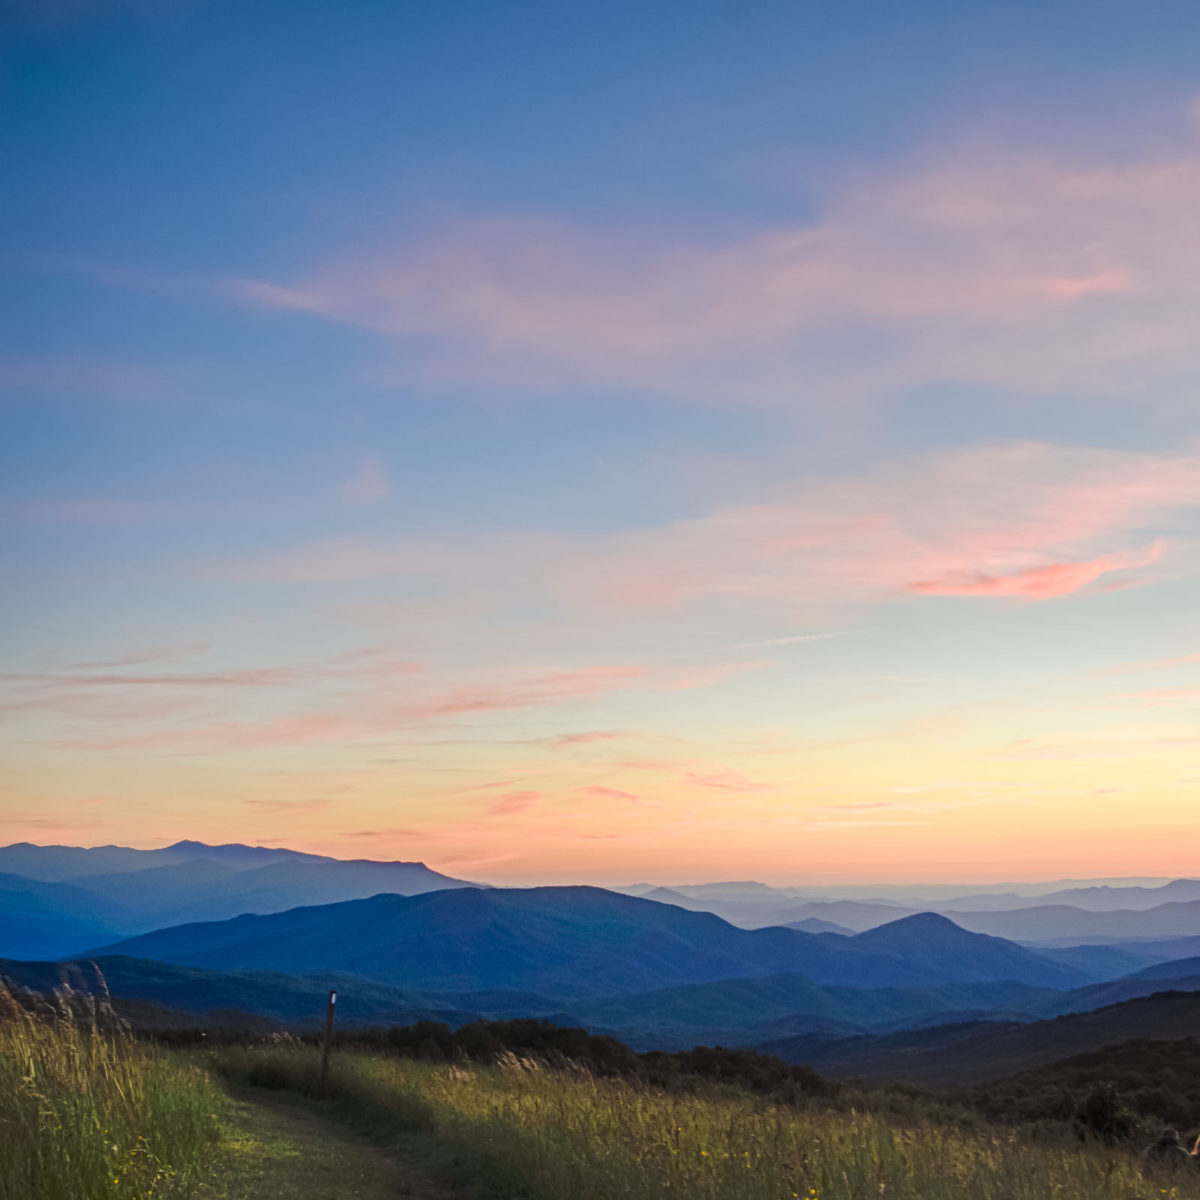 sunrise from the top of Max Patch